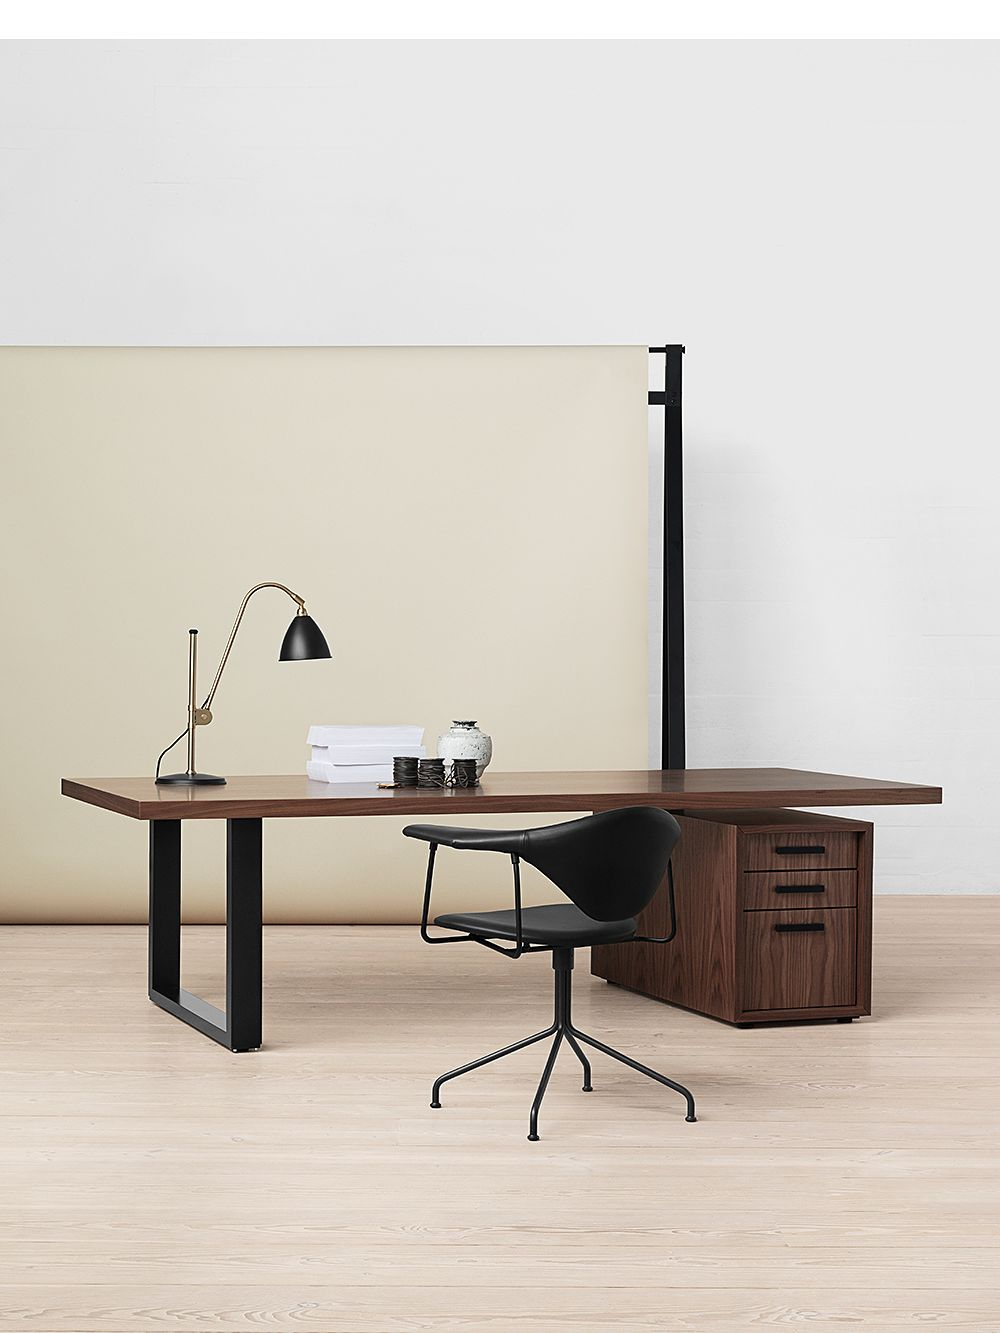 Gubi's Masculo office chair in a home office setting.